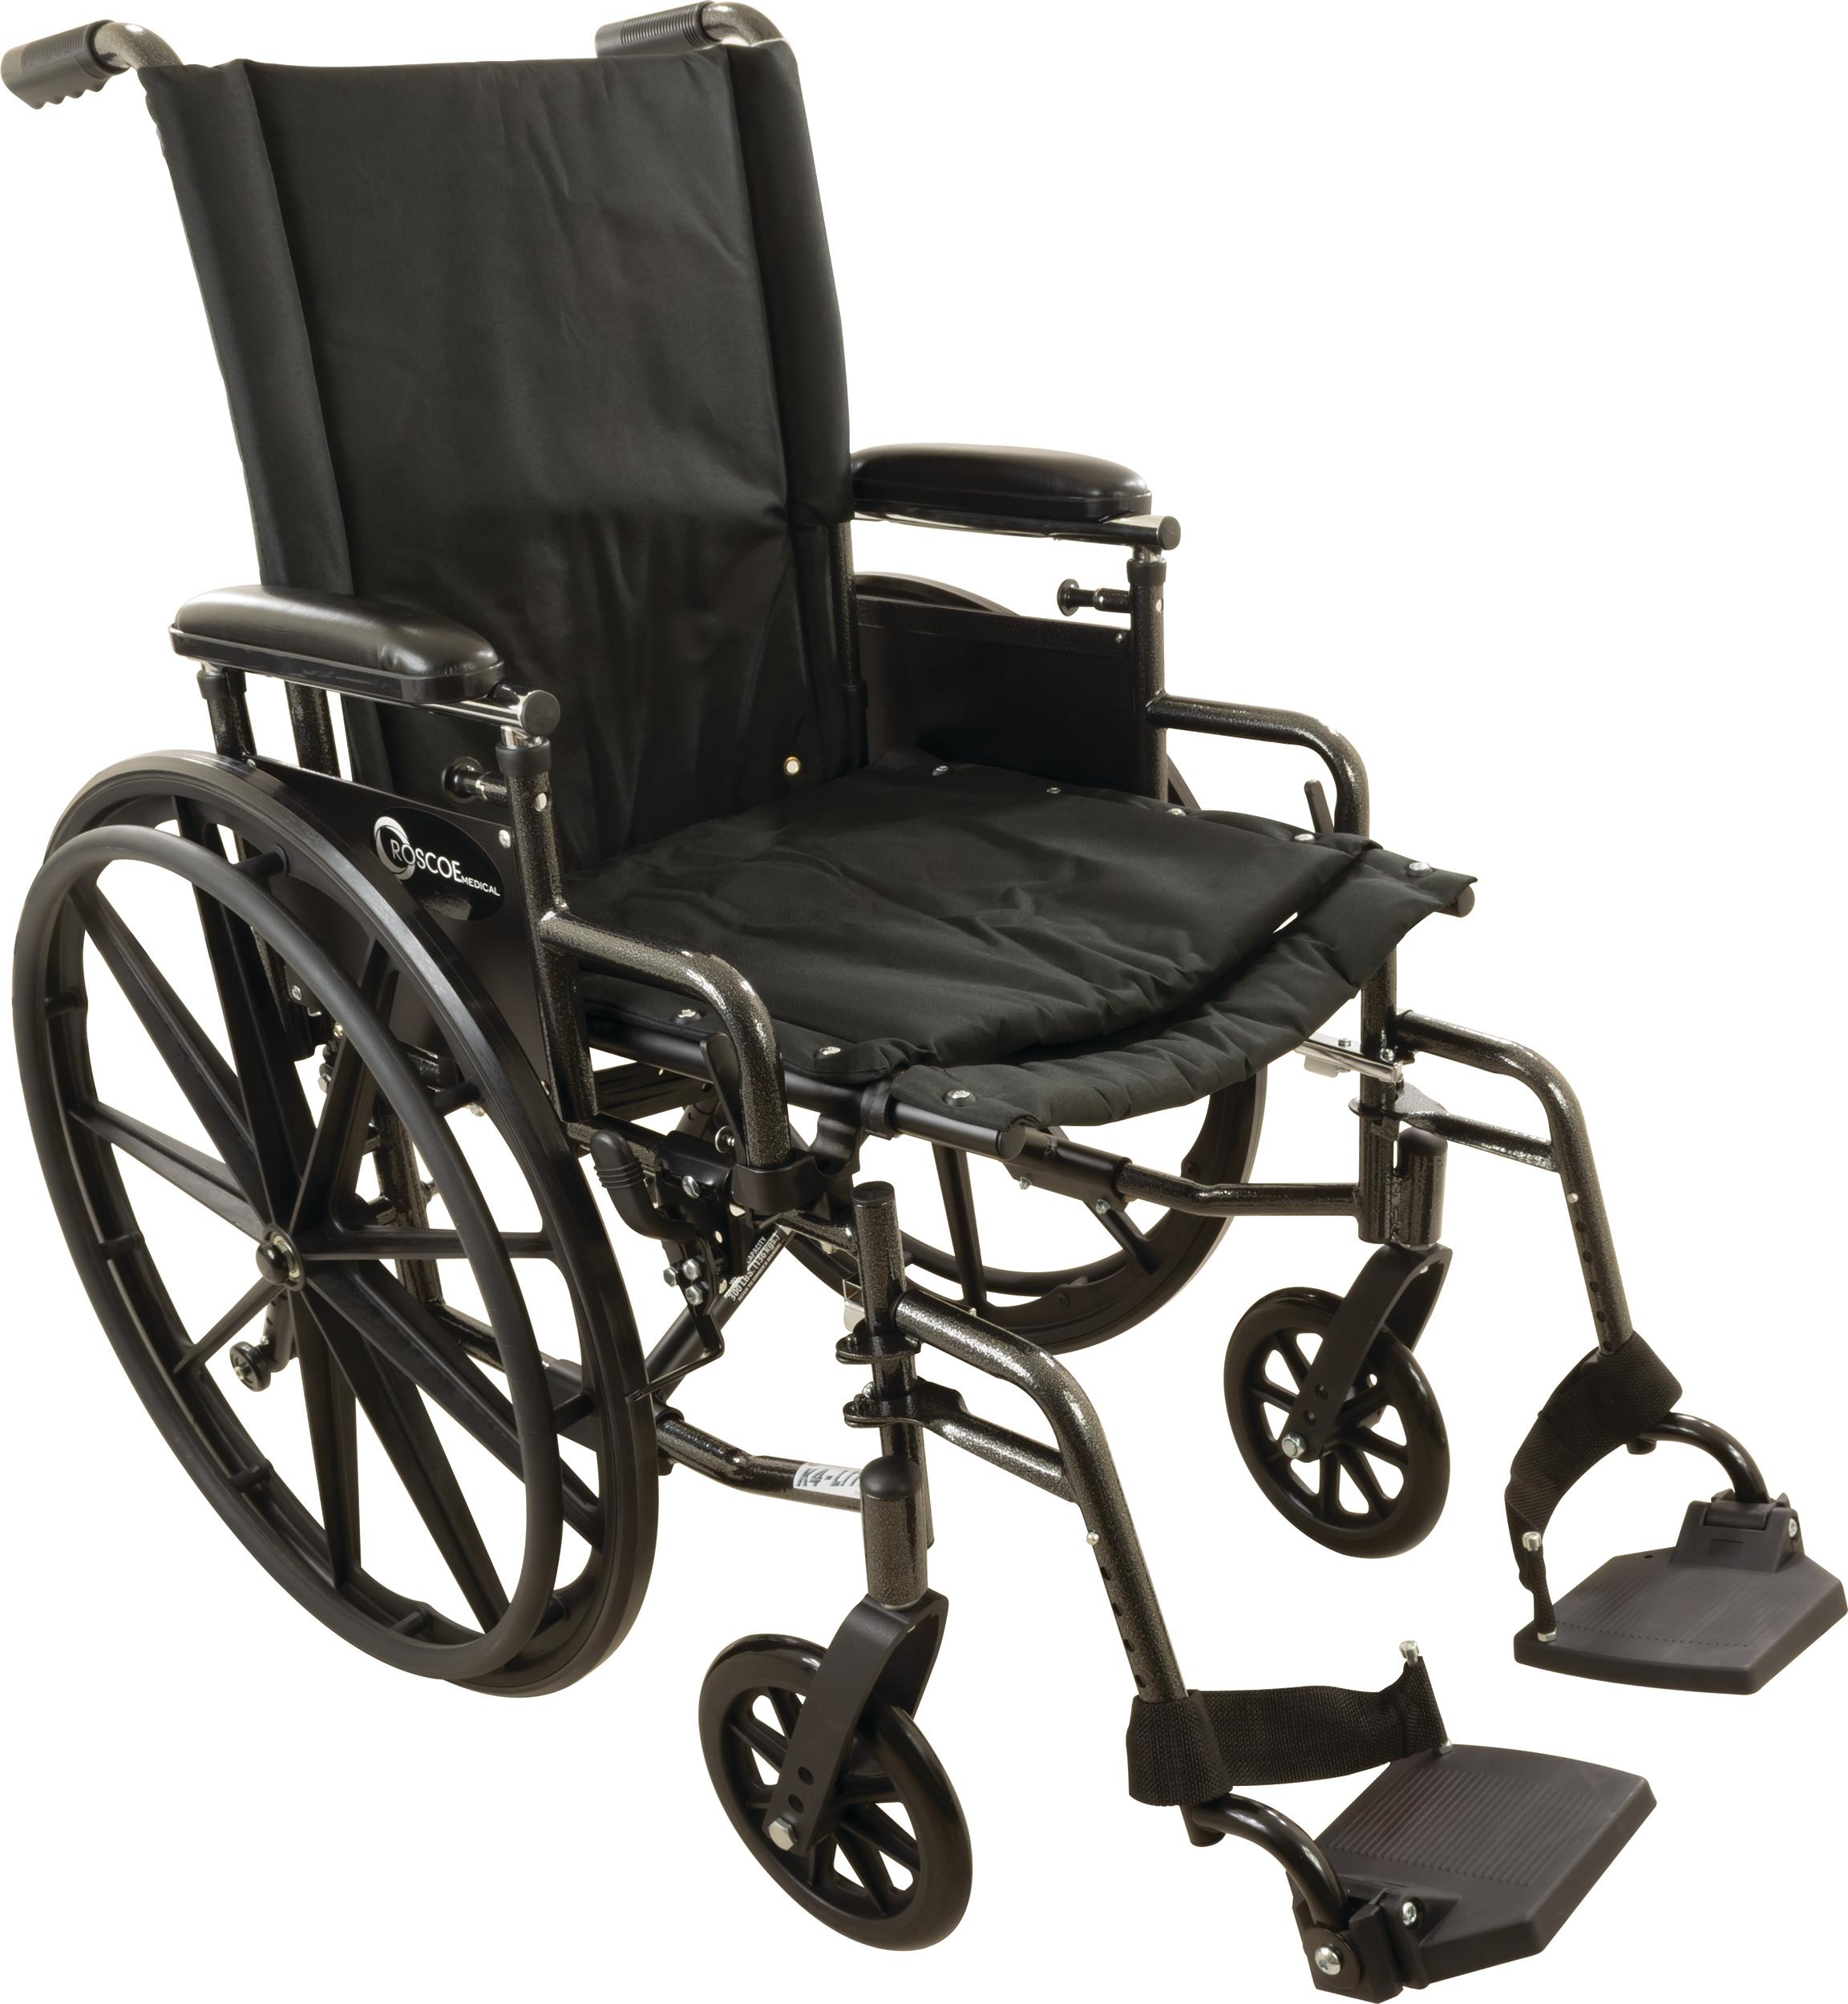 Image result for ROSCOE MEDICAL ONYX K4 WHEELCHAIR